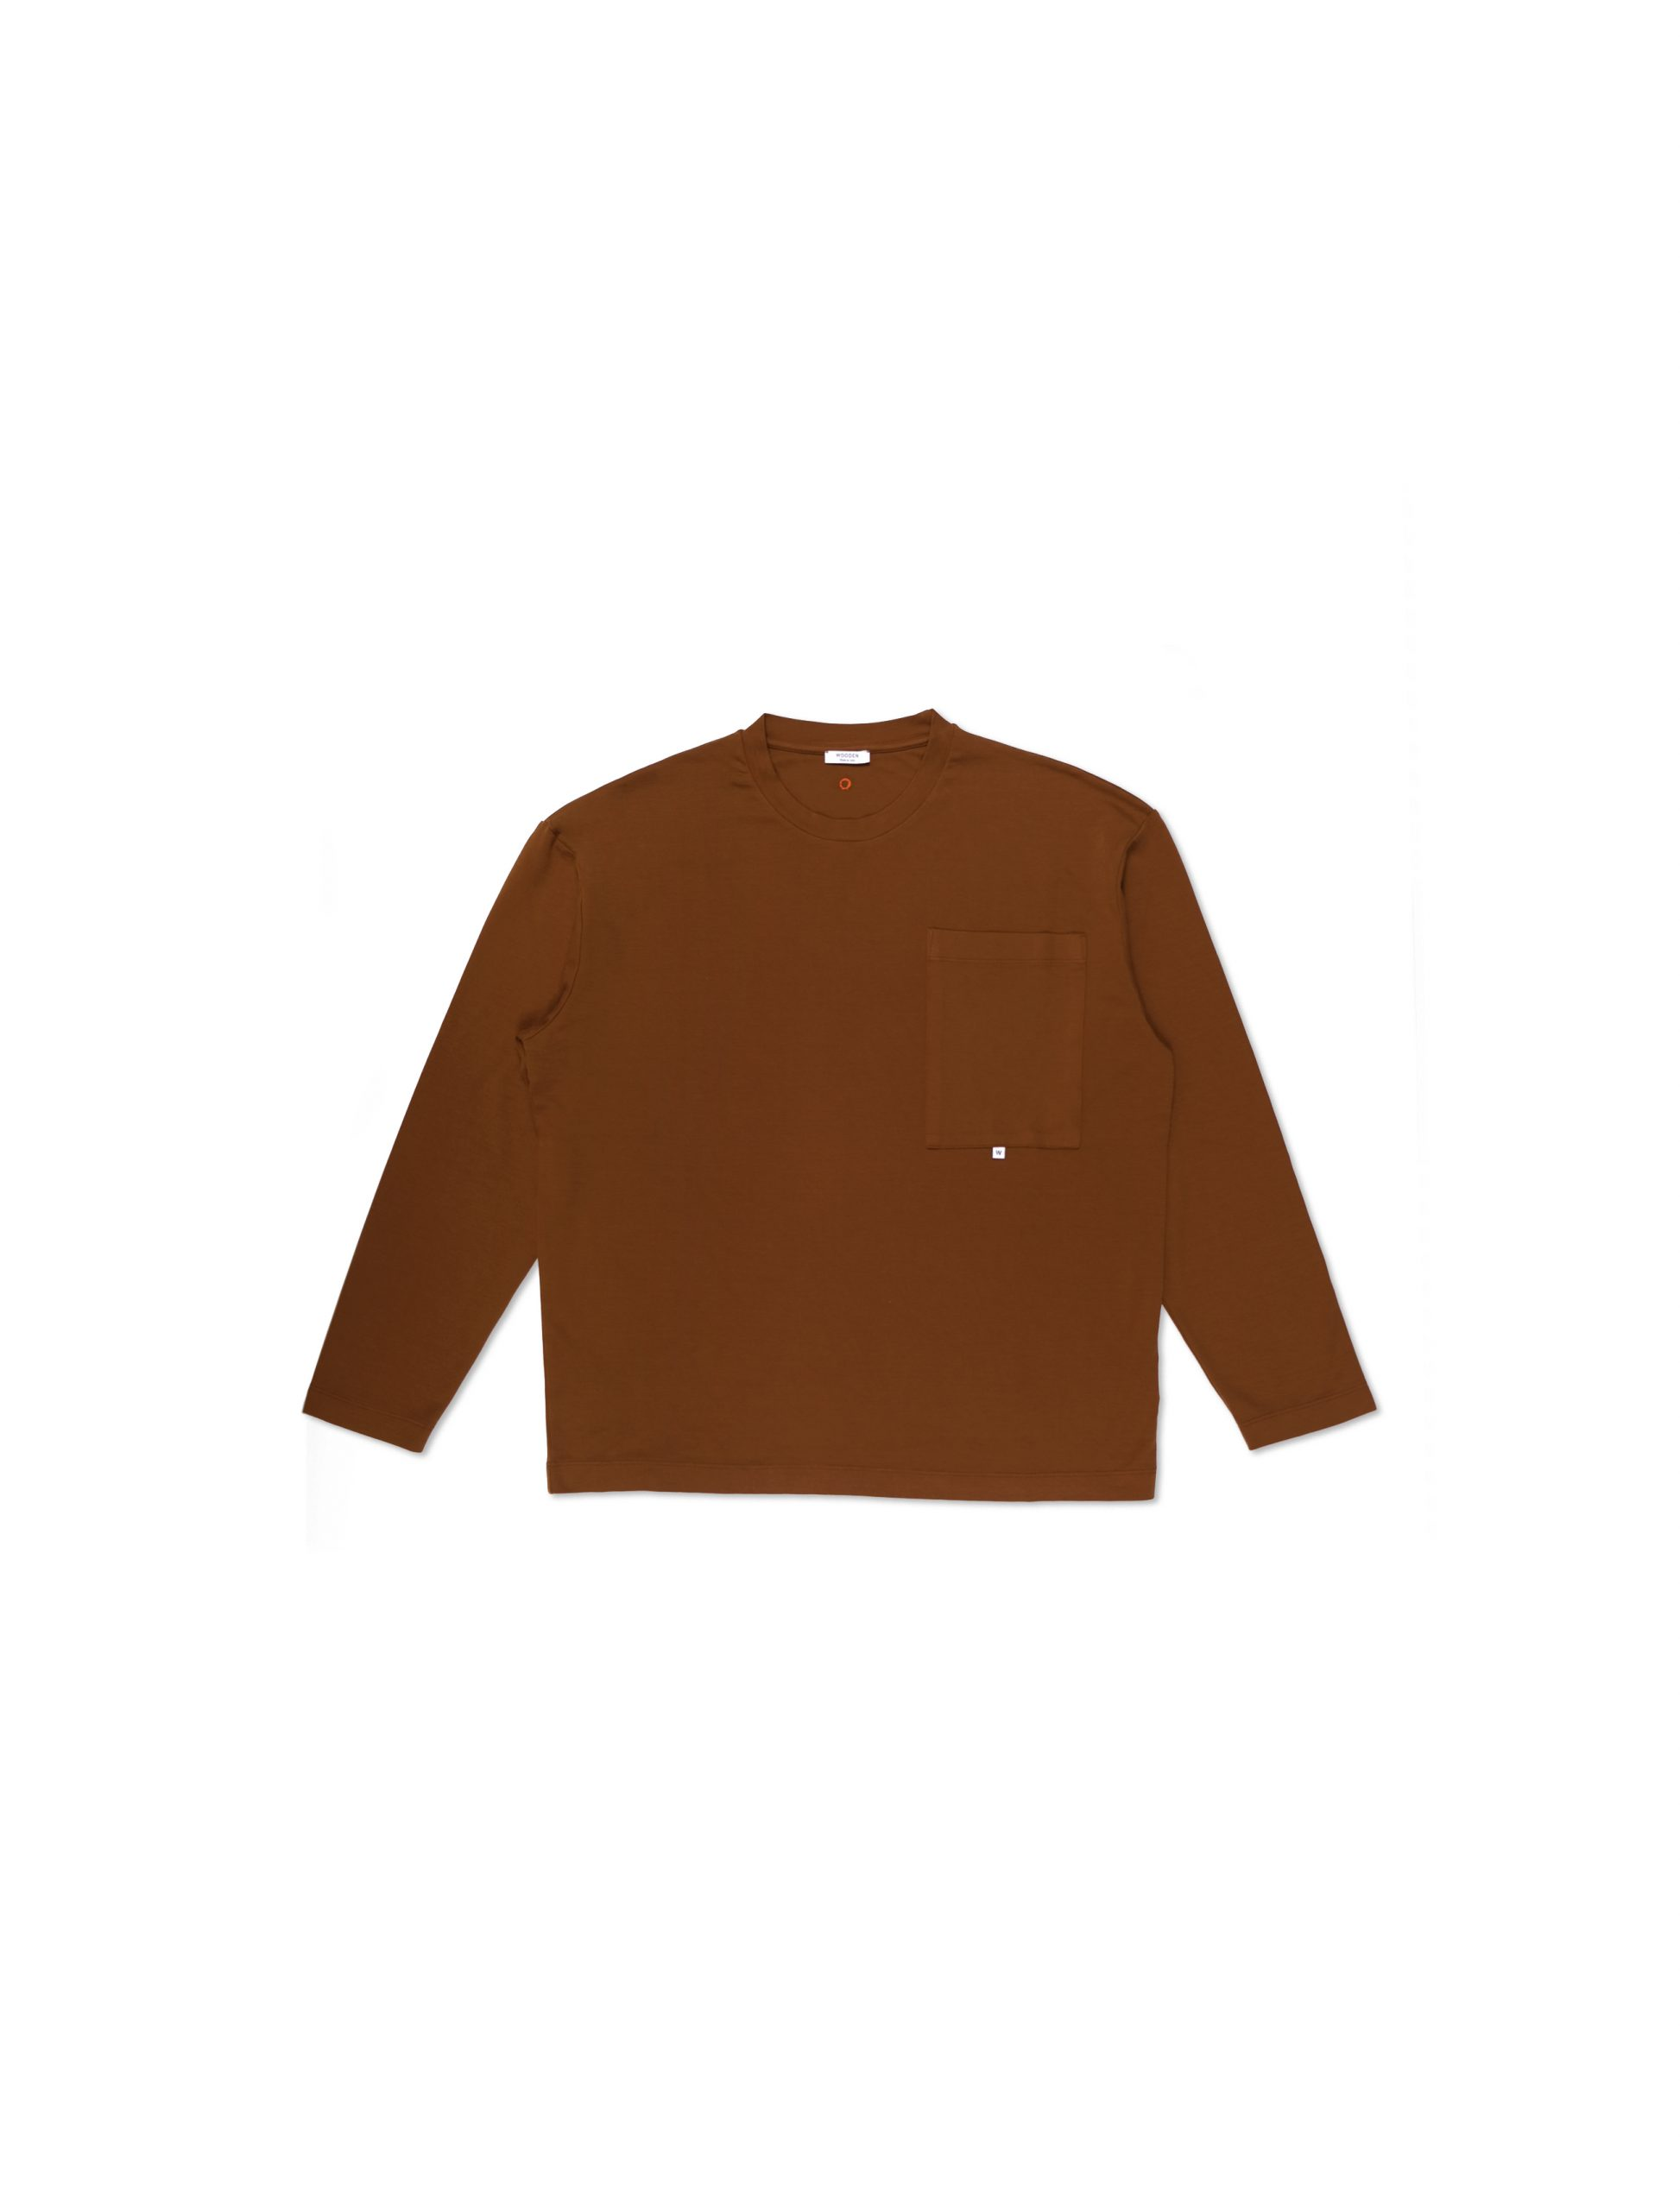 Maglia Longsleeve Cuoio con Tasca | Wooden Store